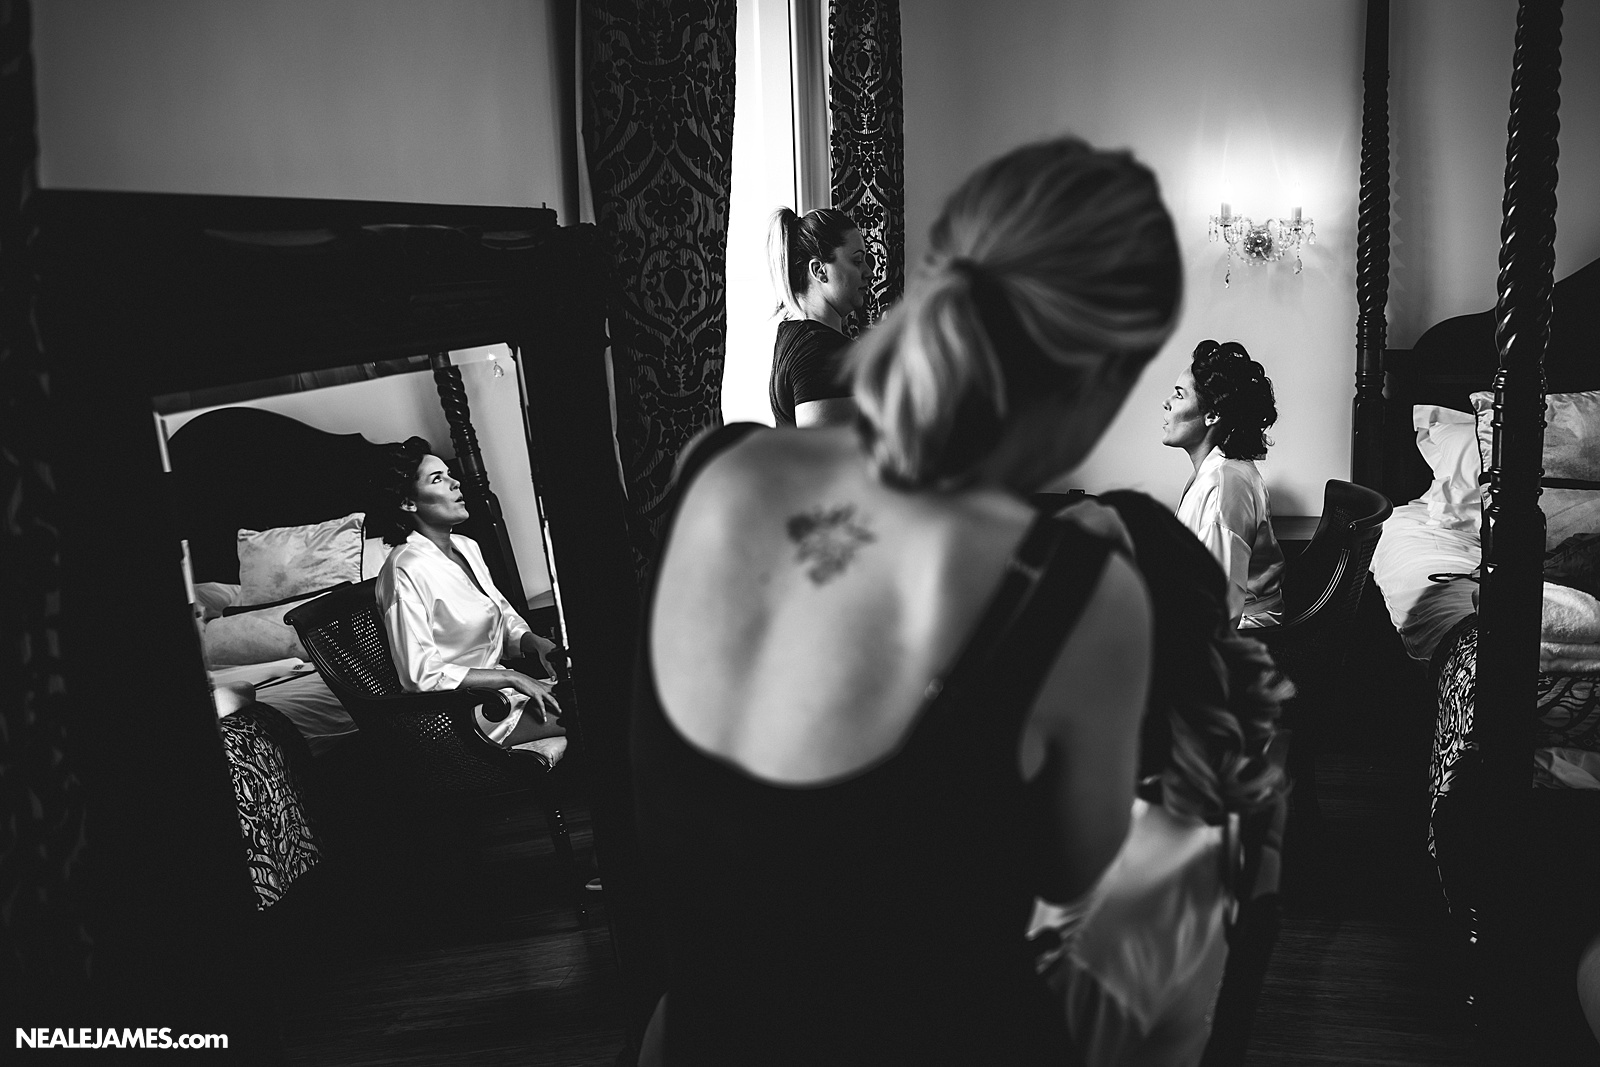 A black and white photograph captured at Botleys Mansion as the bride prepares for her wedding day